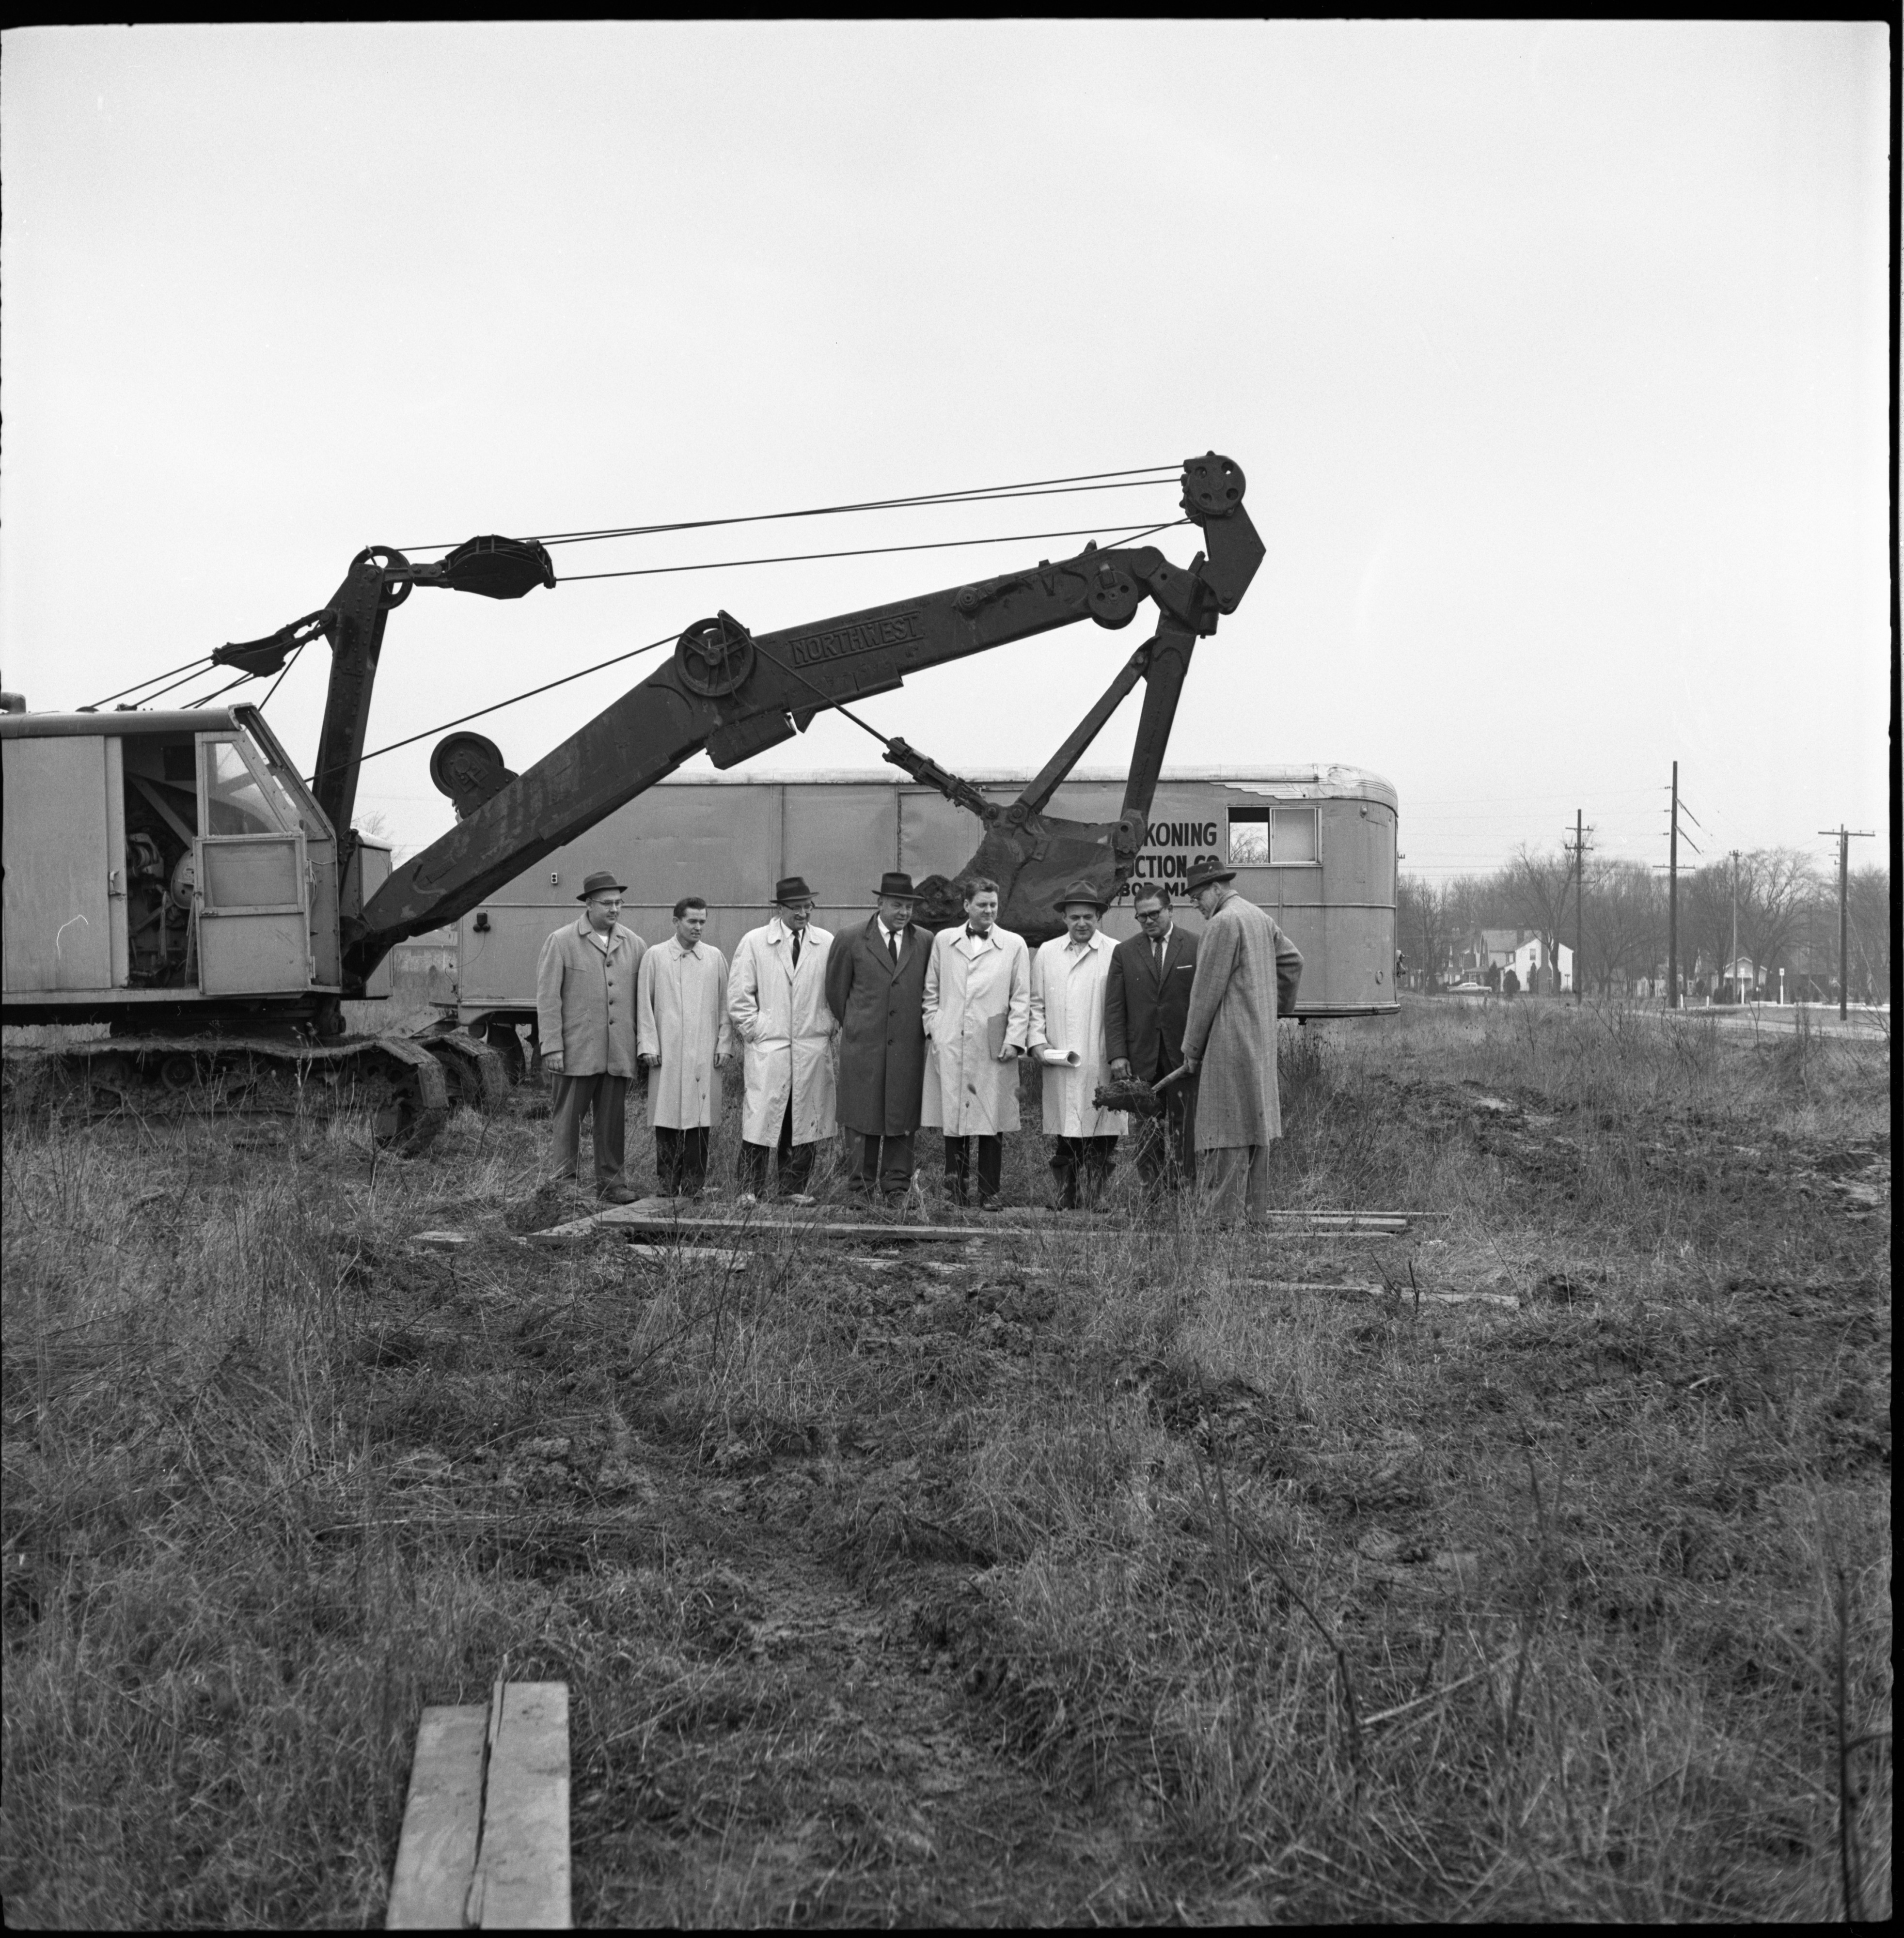 Ground Breaking For Colonial Lanes Bowling Center, March 1960 image